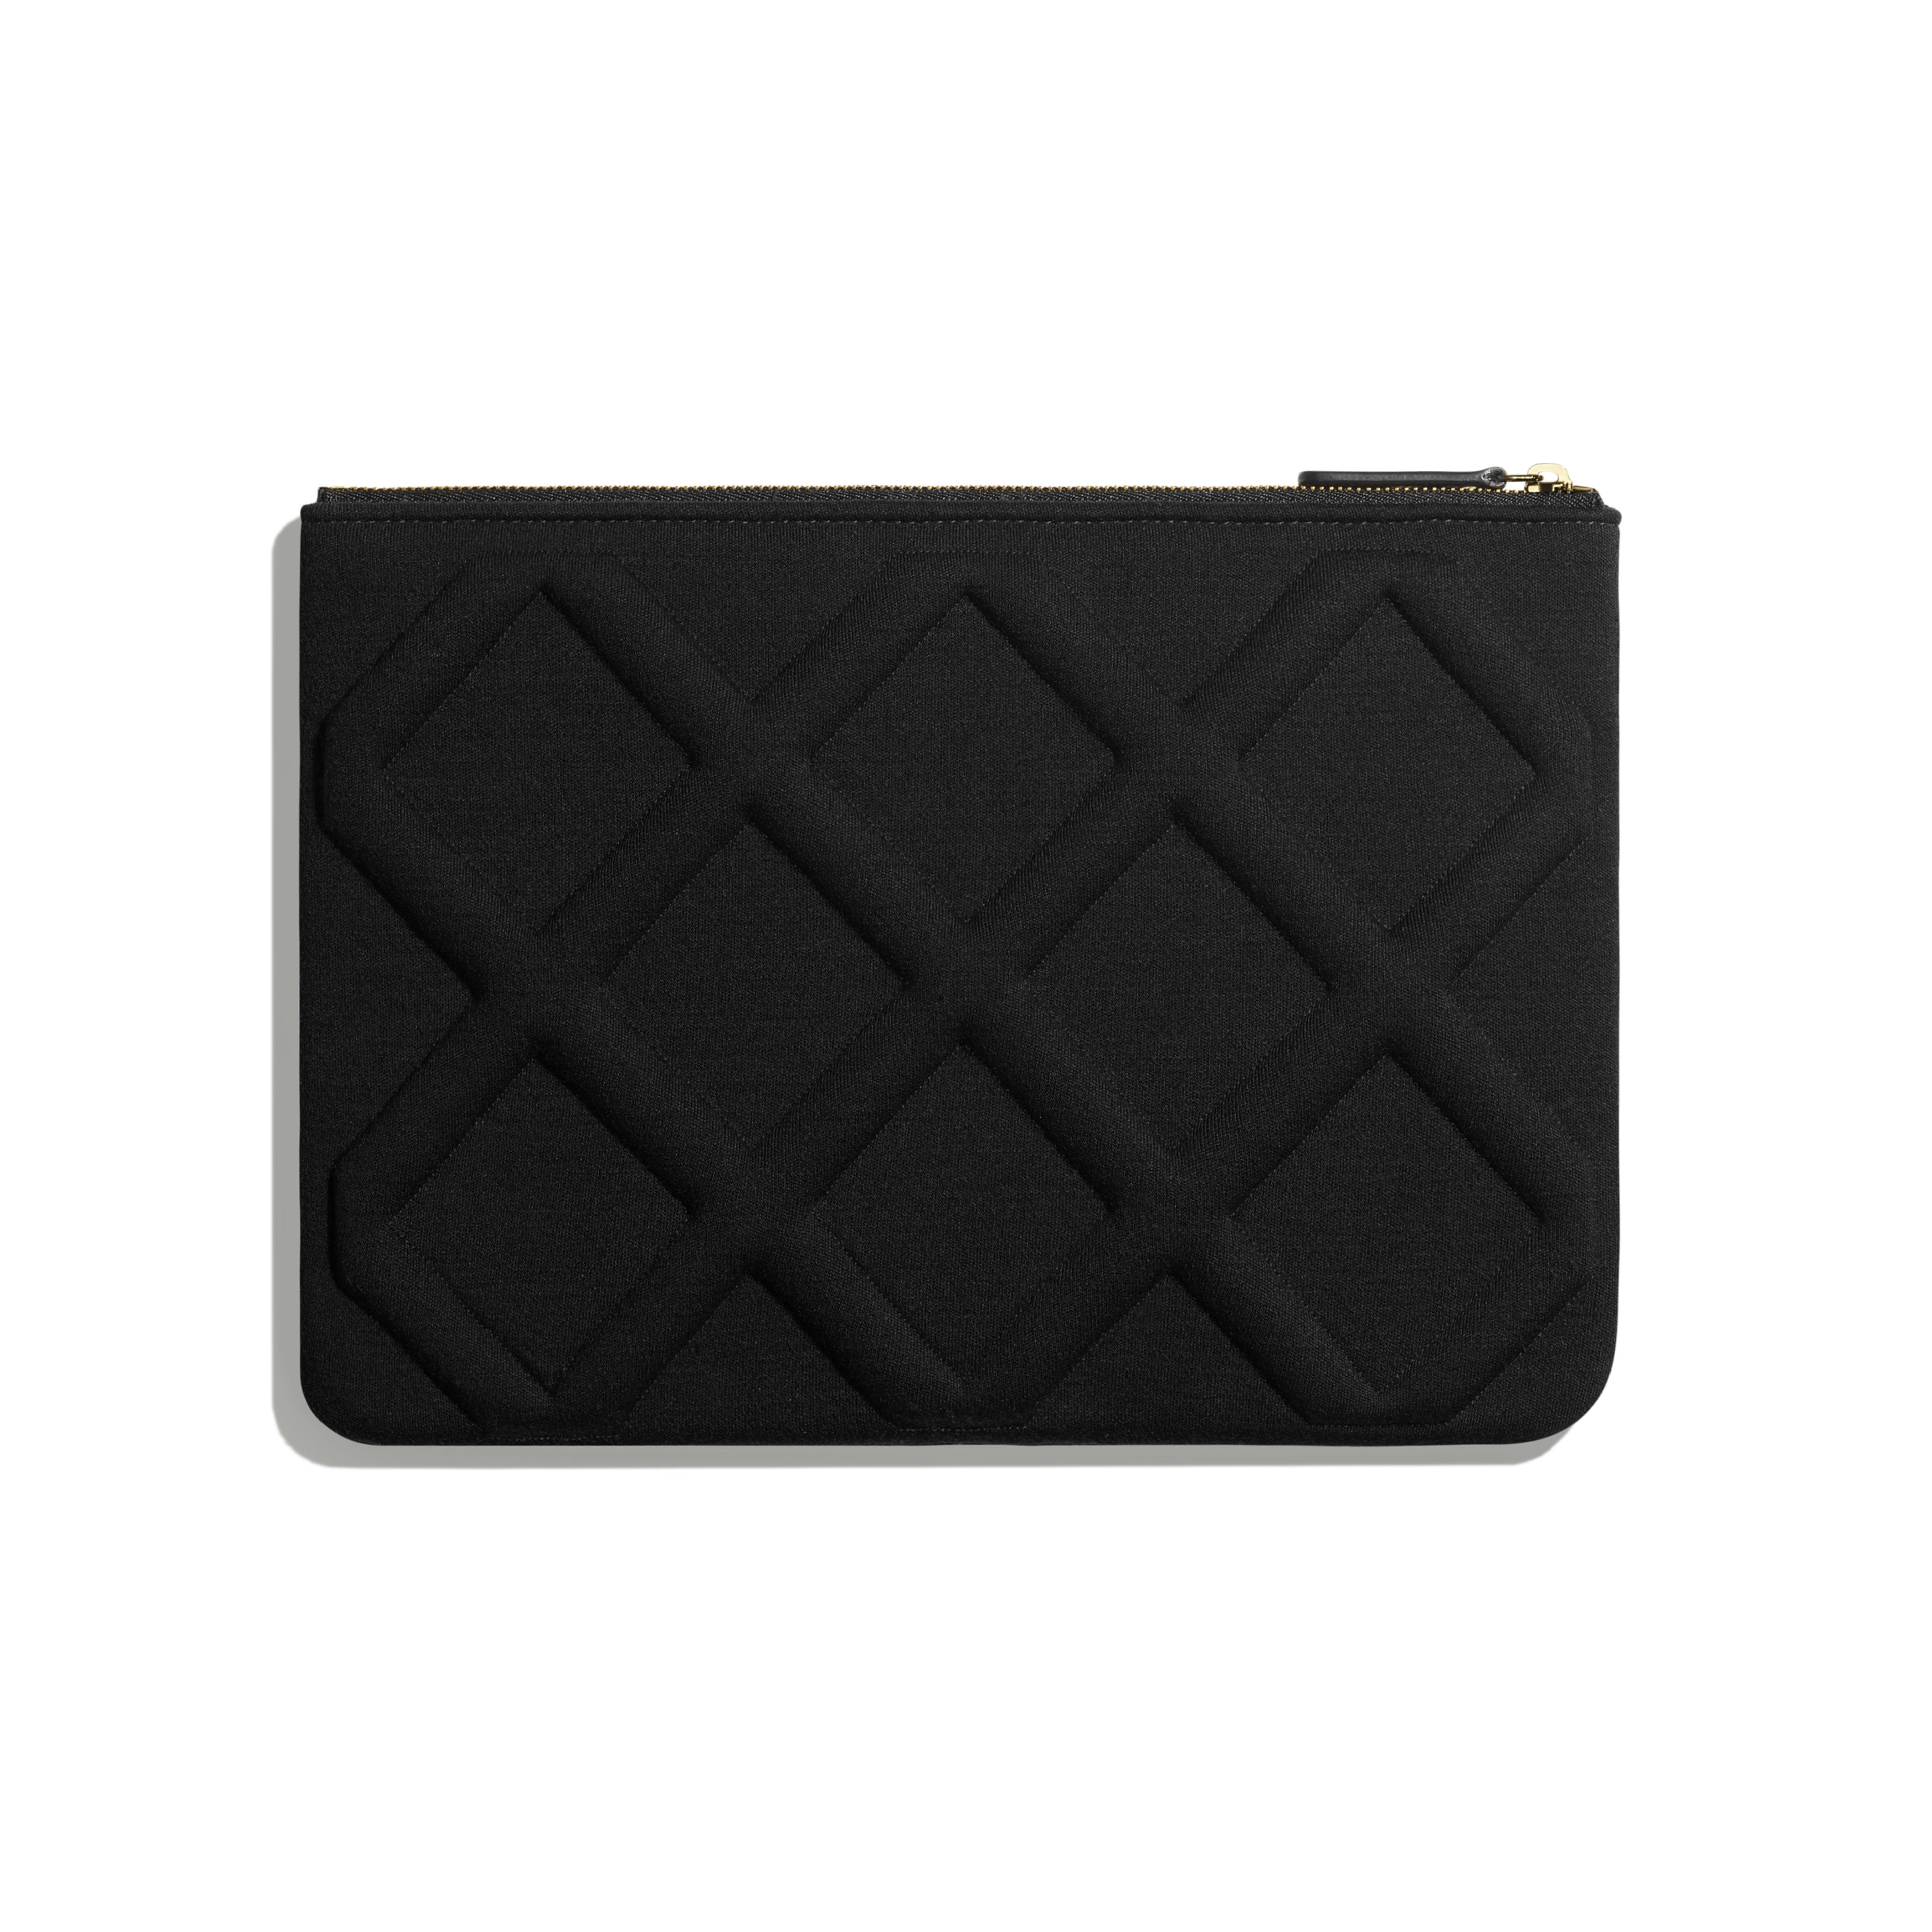 CHANEL 19 Pouch - Black - Jersey, Gold-Tone, Silver-Tone & Ruthenium-Finish Metal - Alternative view - see full sized version